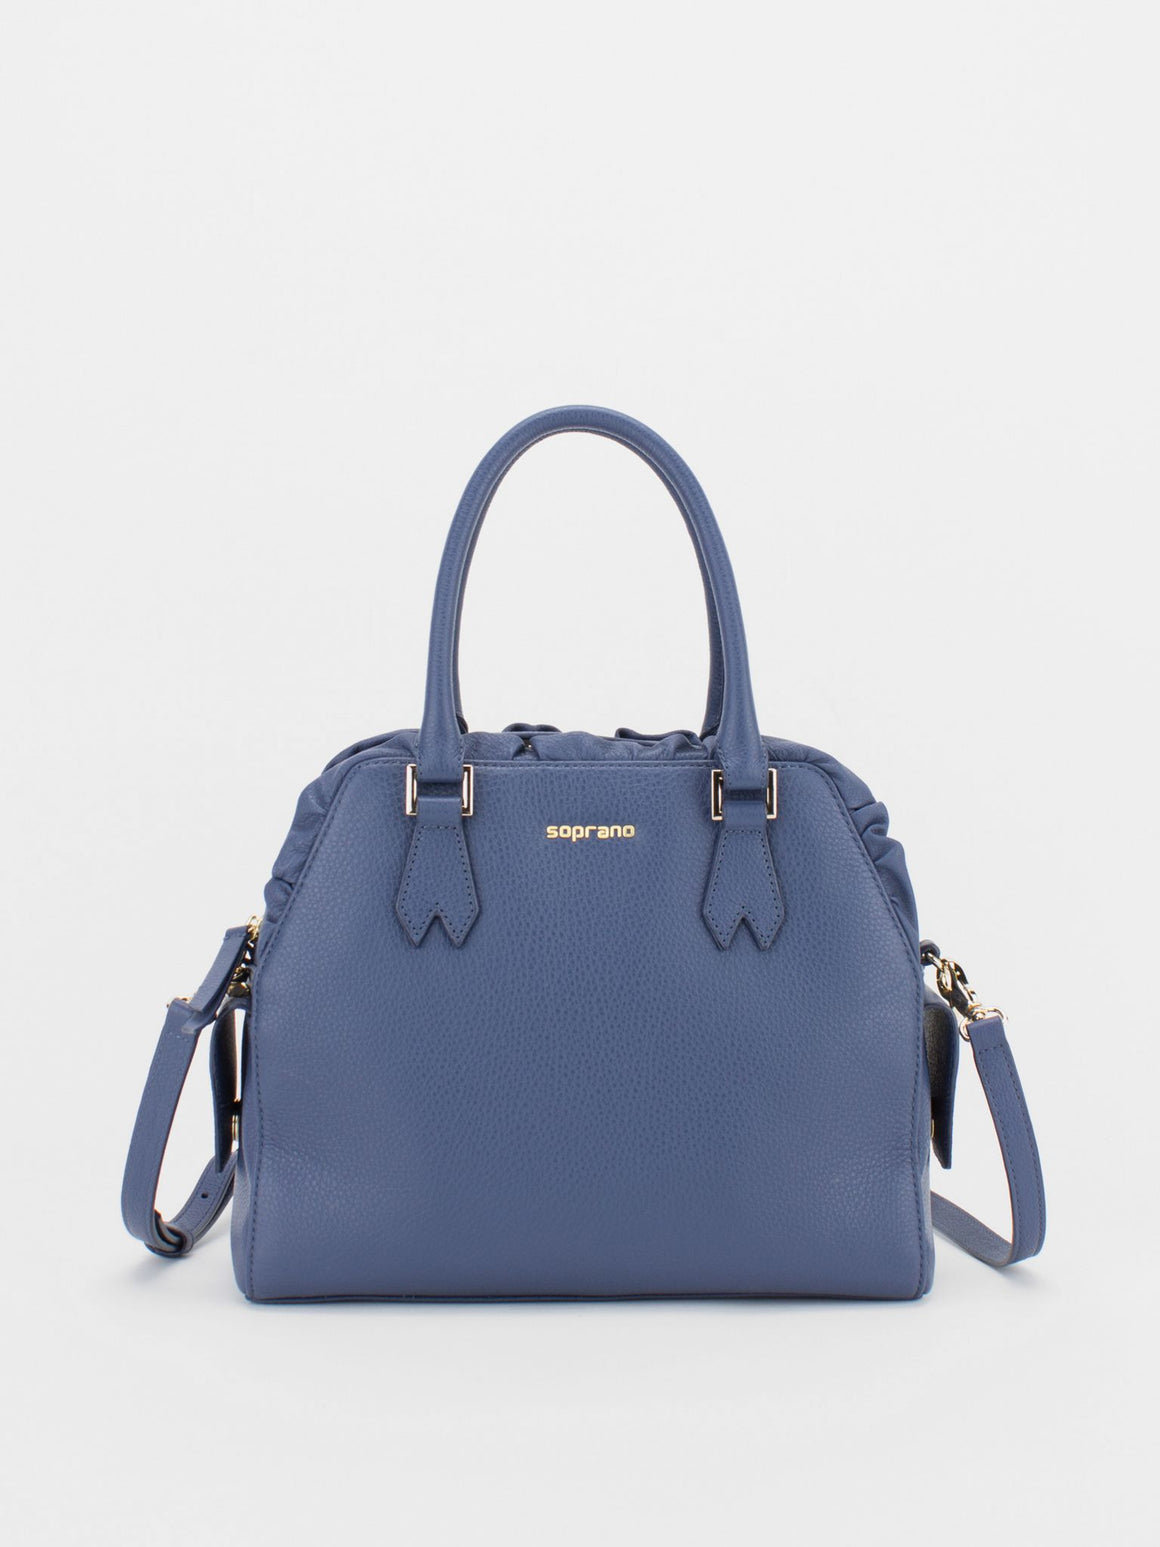 TIARA Leather Satchel with Ruched Detail - Navy